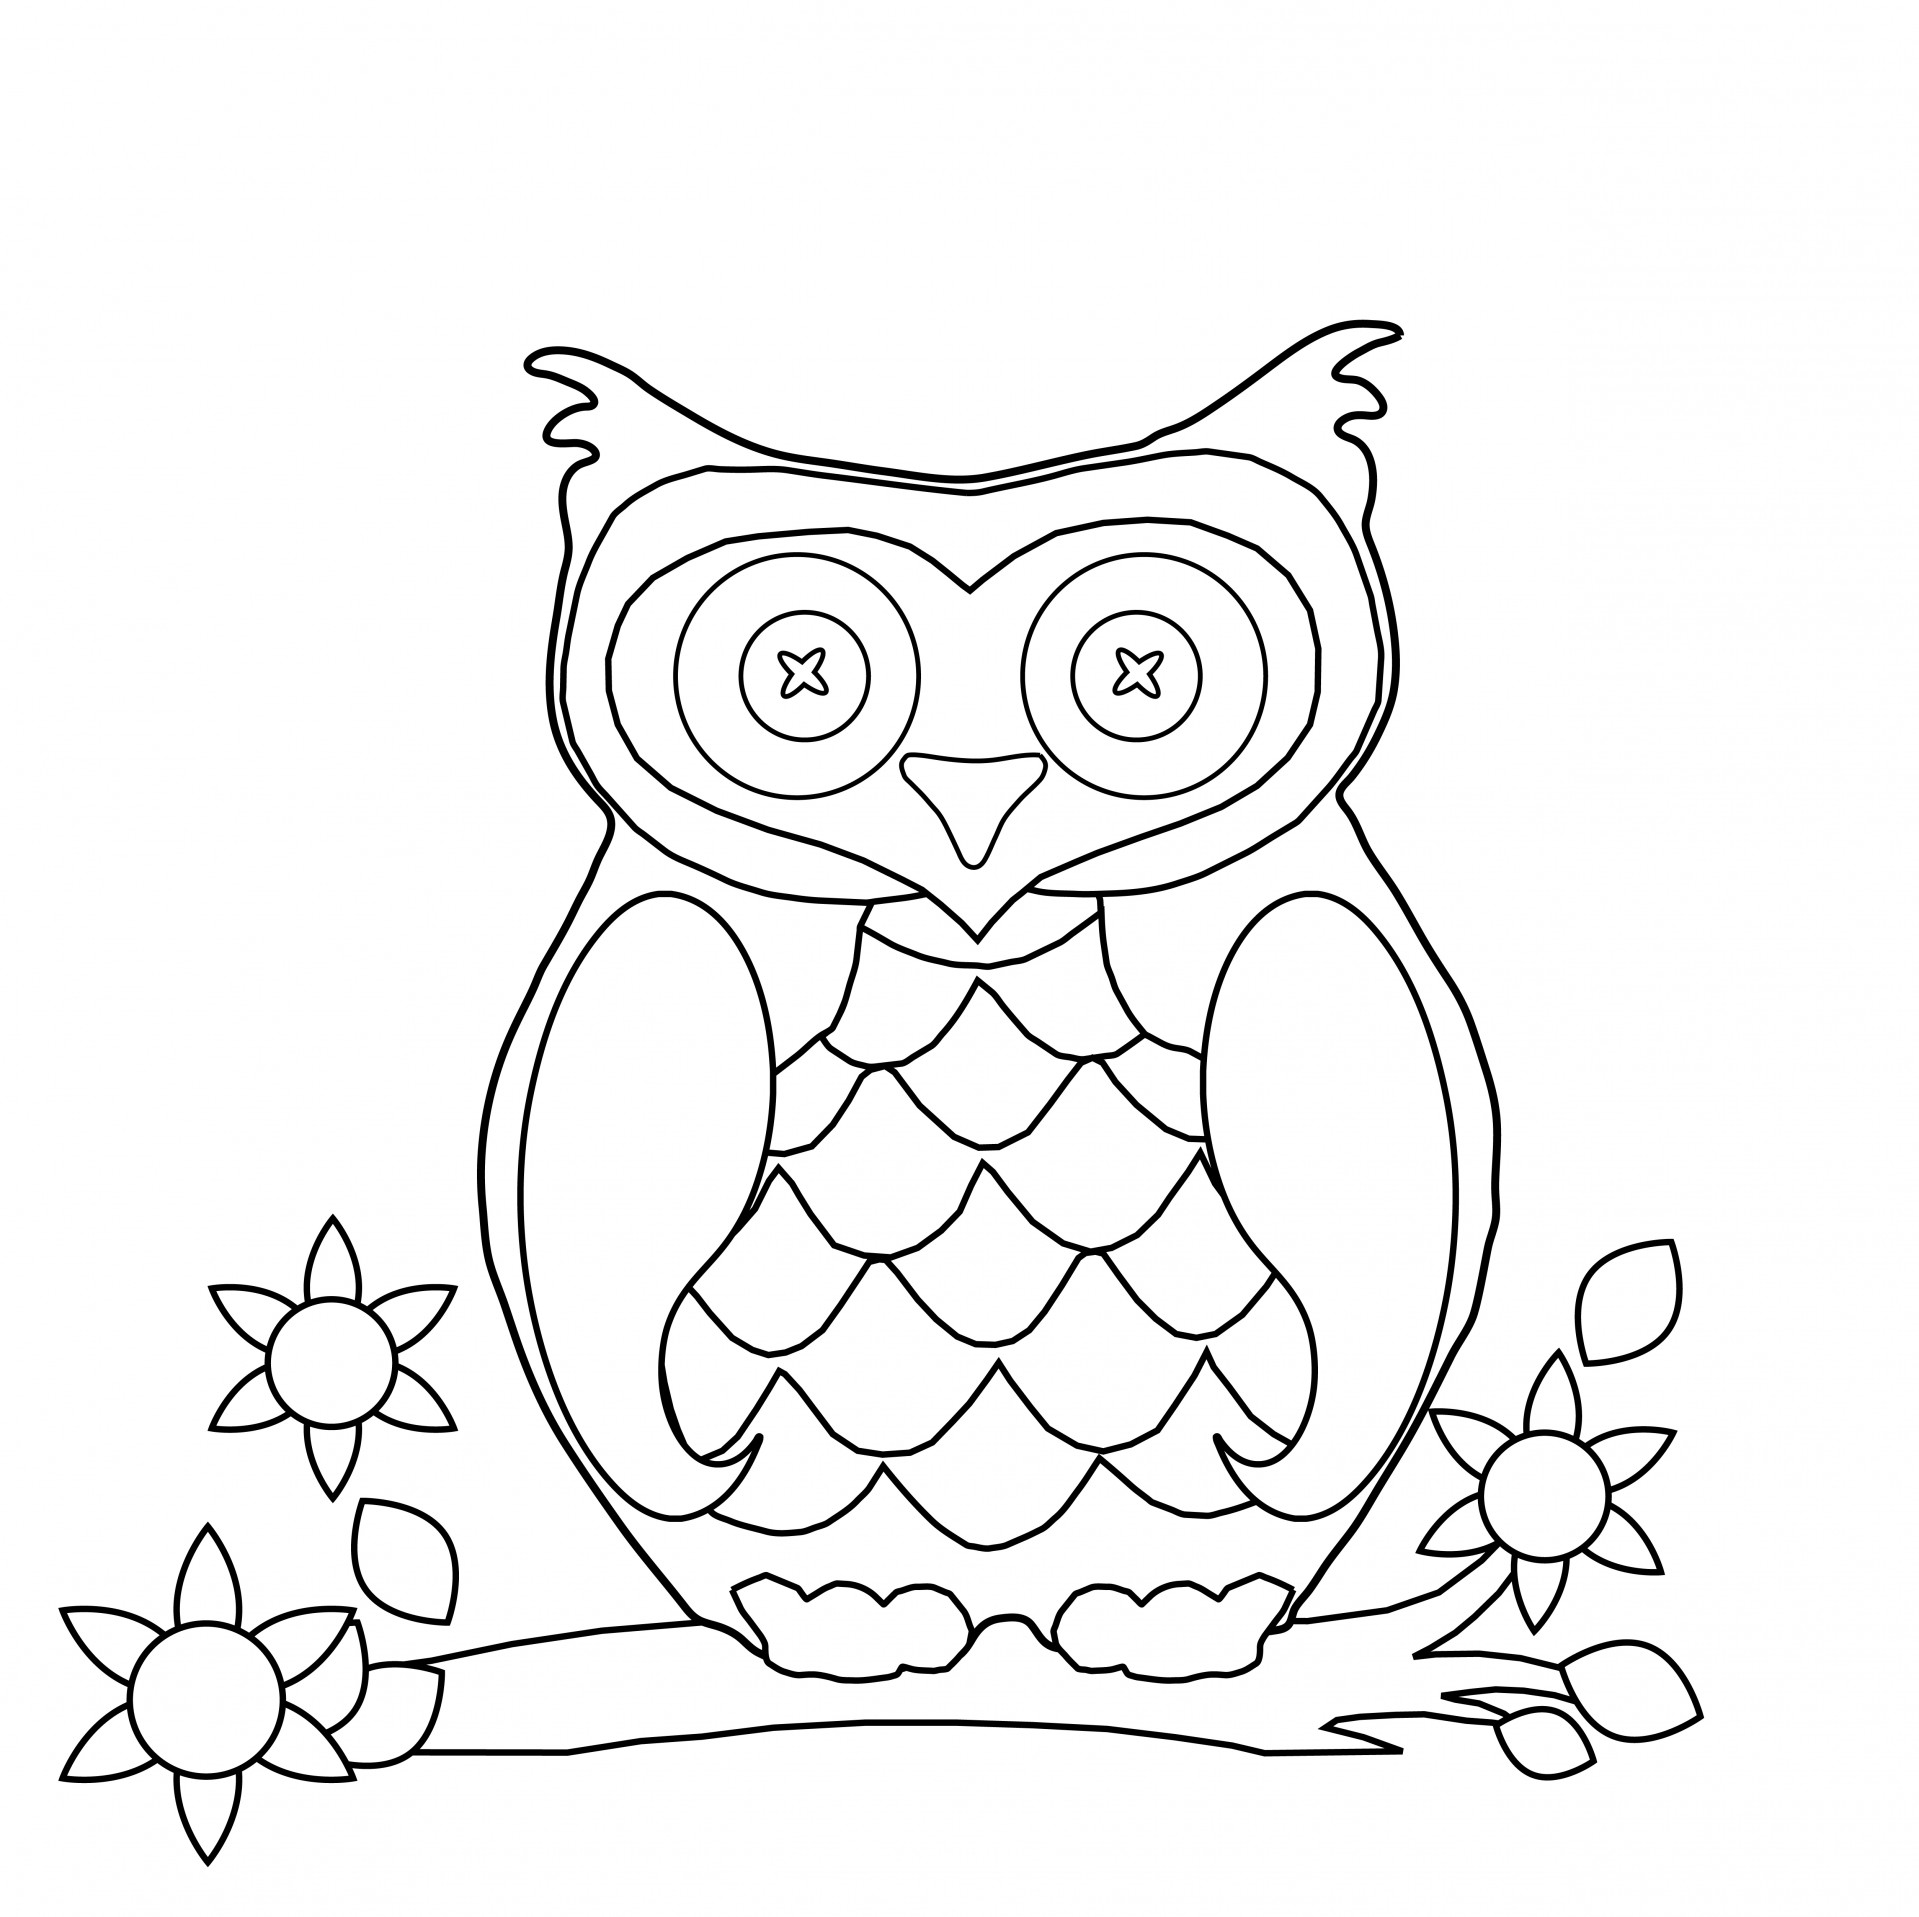 free printable pages free printable abstract coloring pages for adults printable free pages